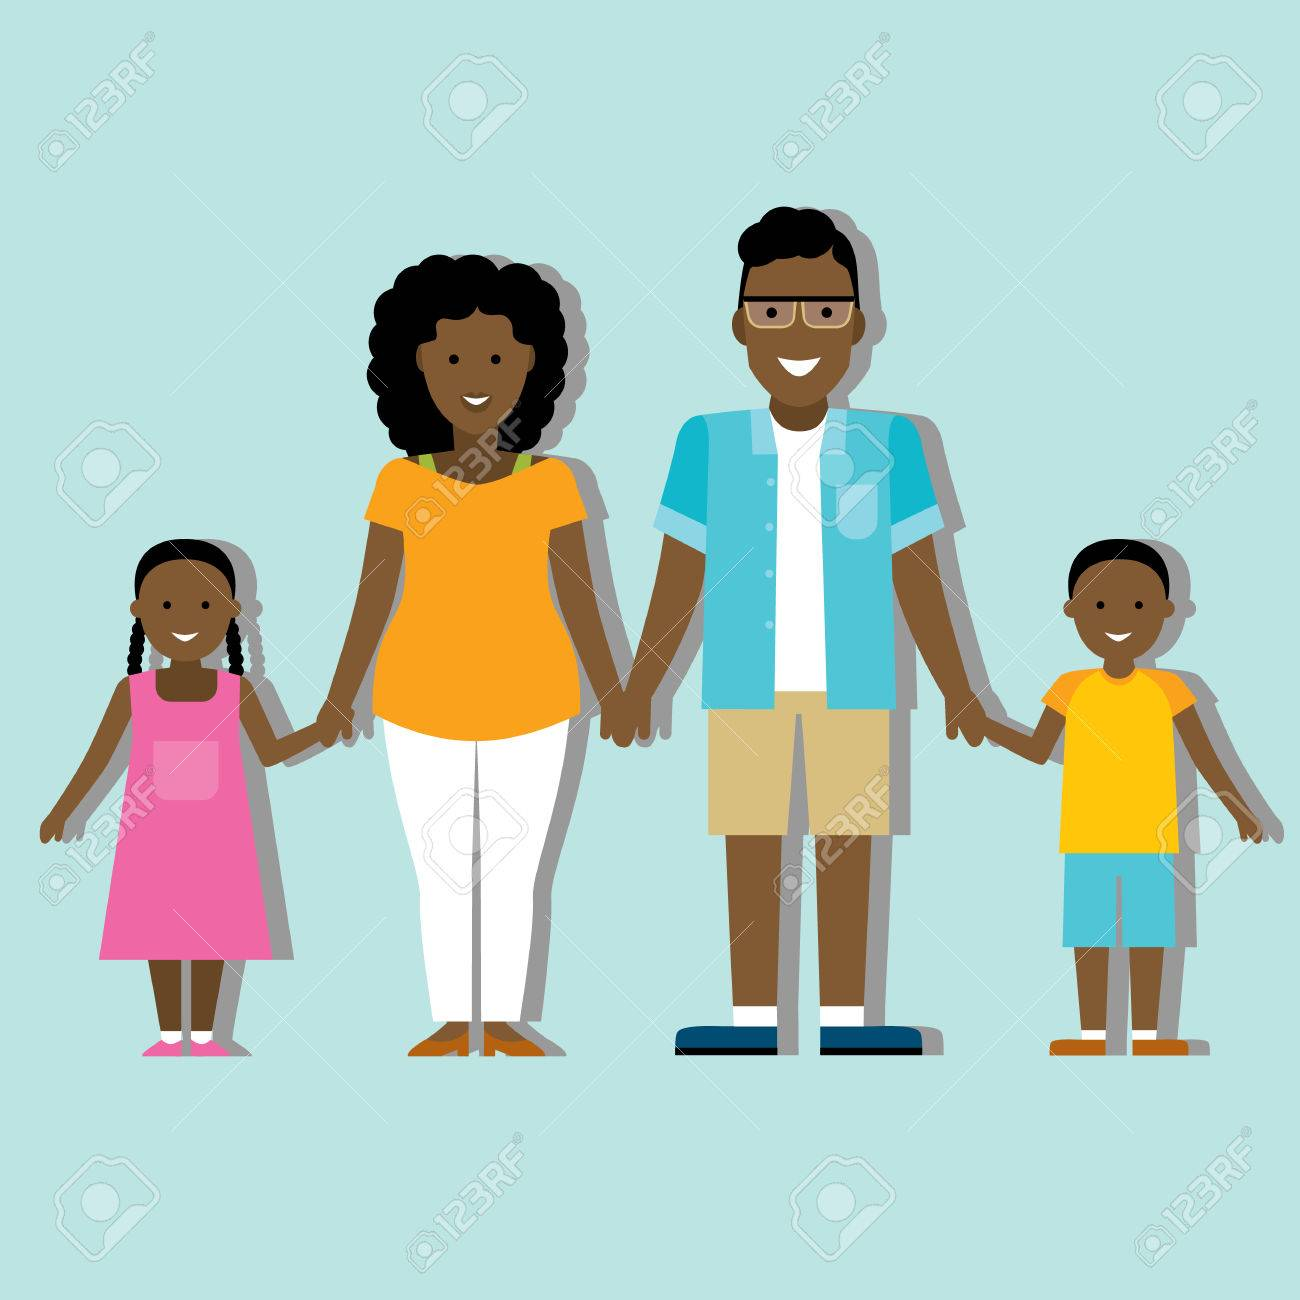 hight resolution of family colourful silhouette with african american parents and children stock vector 55589477